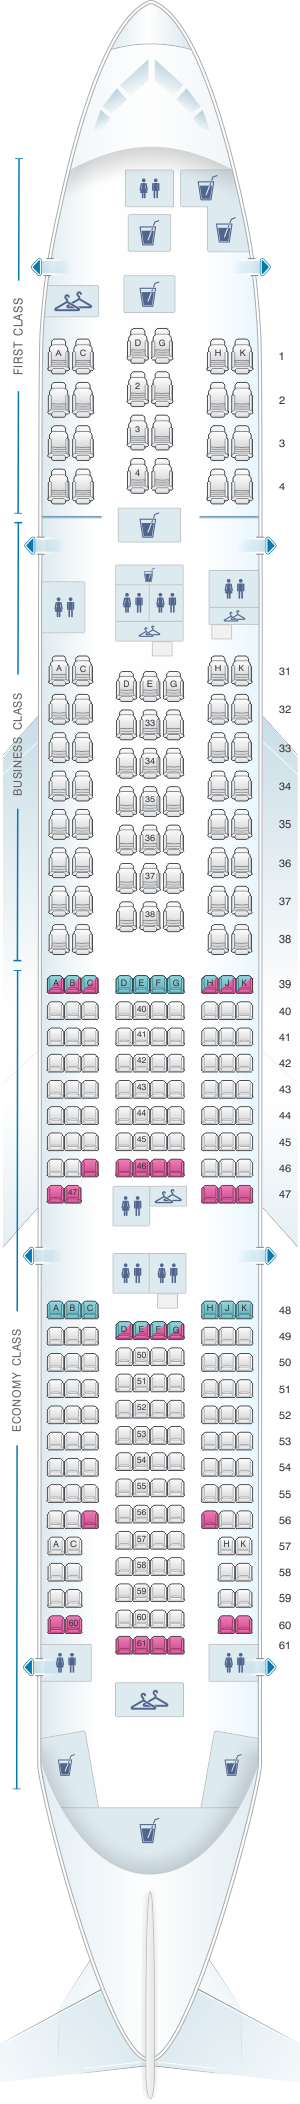 Seat map for China Southern Airlines Boeing B777B